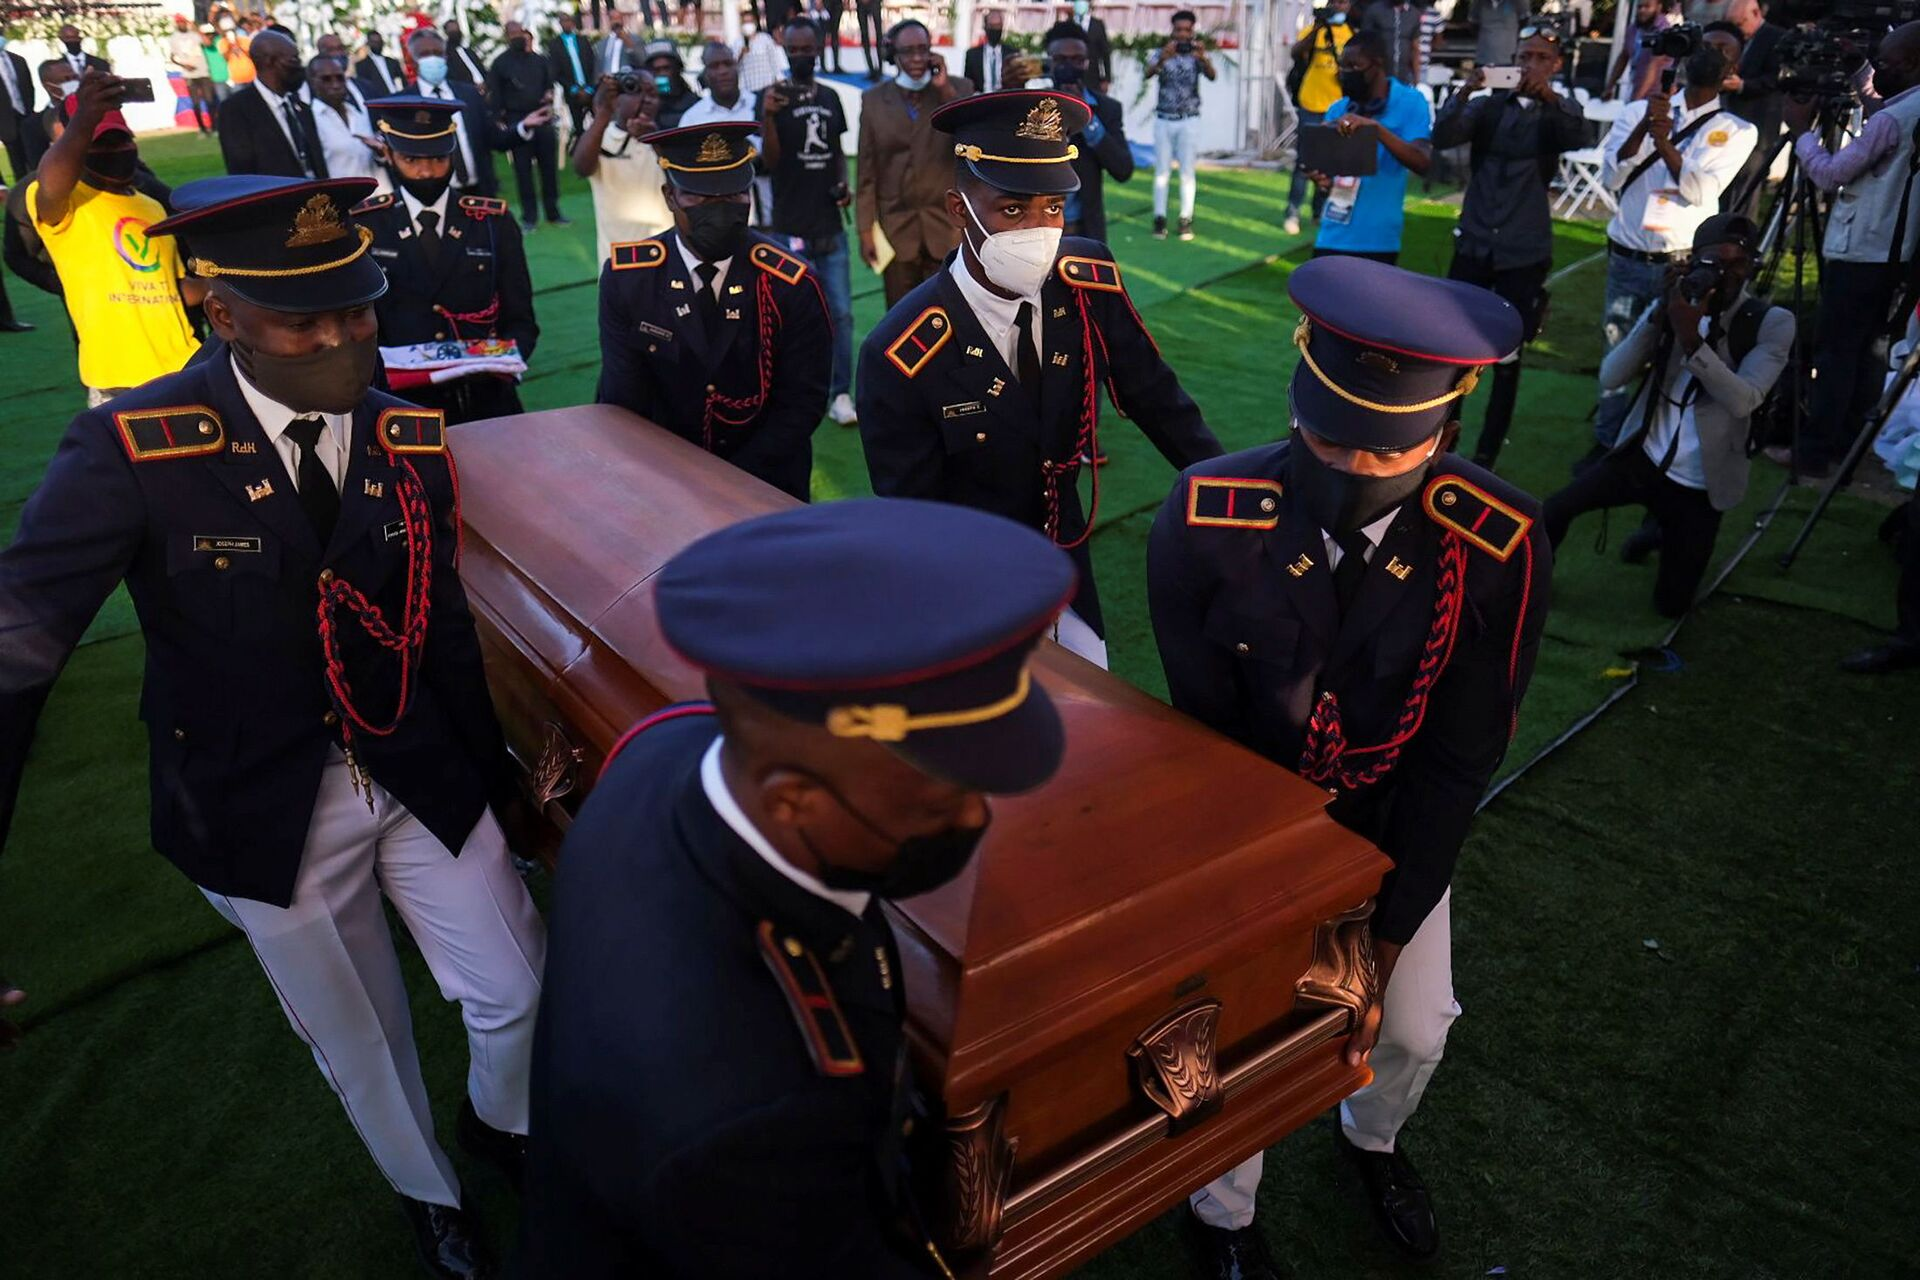 Pallbearers in military attire carry the coffin holding the body of late Haitian President Jovenel Moise after he was shot dead at his home in Port-au-Prince earlier this month, in Cap-Haitien, July 23, 2021. REUTERS/Ricardo Arduengo - Sputnik International, 1920, 07.09.2021